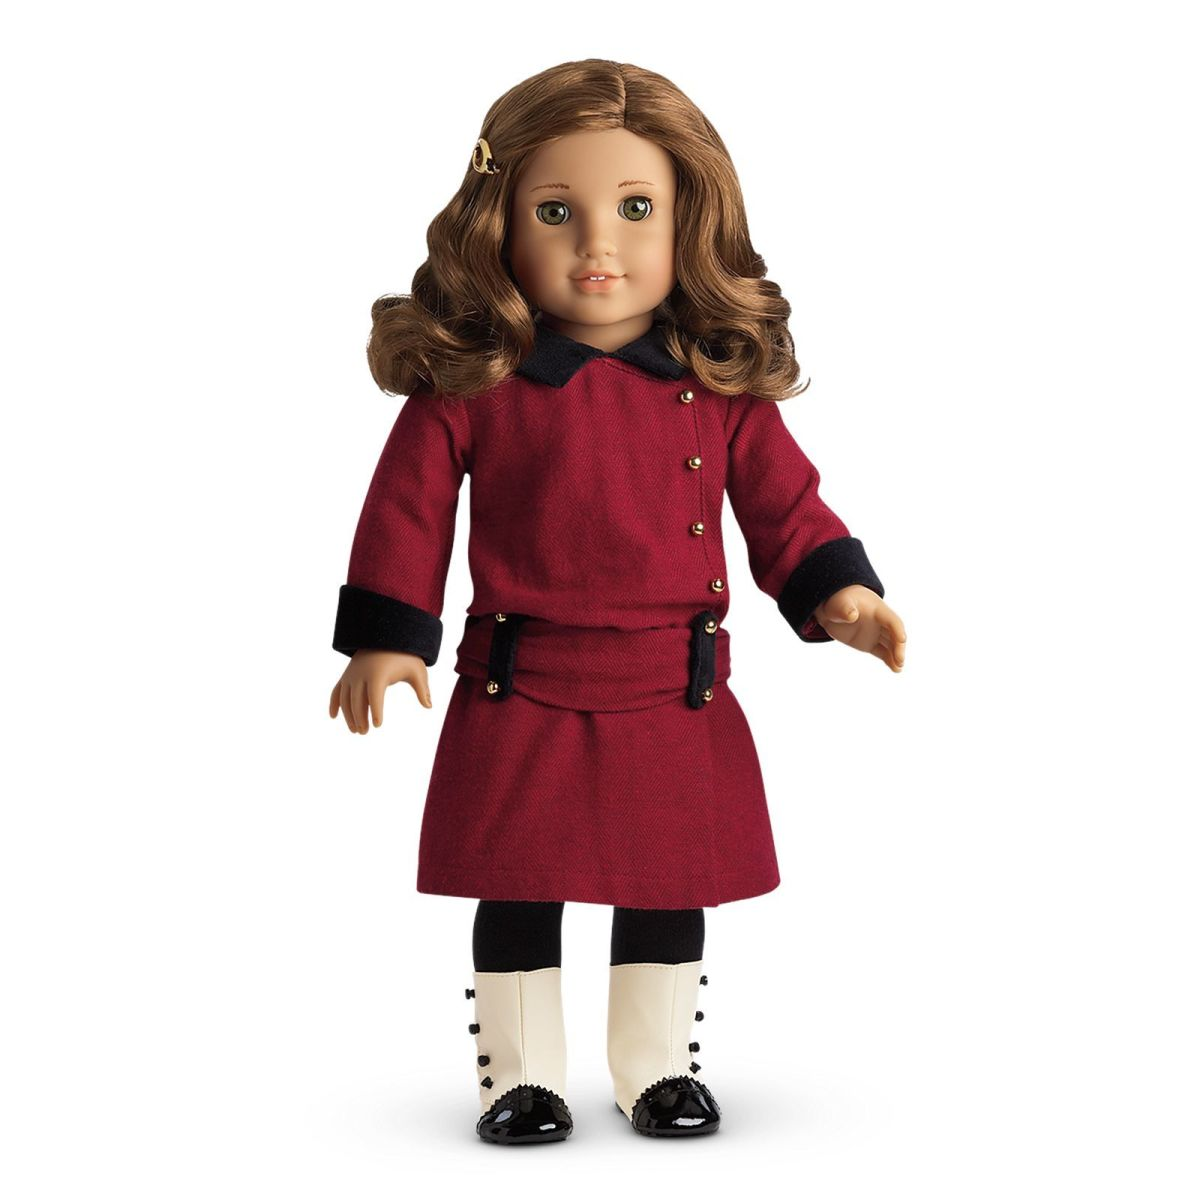 A Rebecca doll in her Classic Meet Outfit